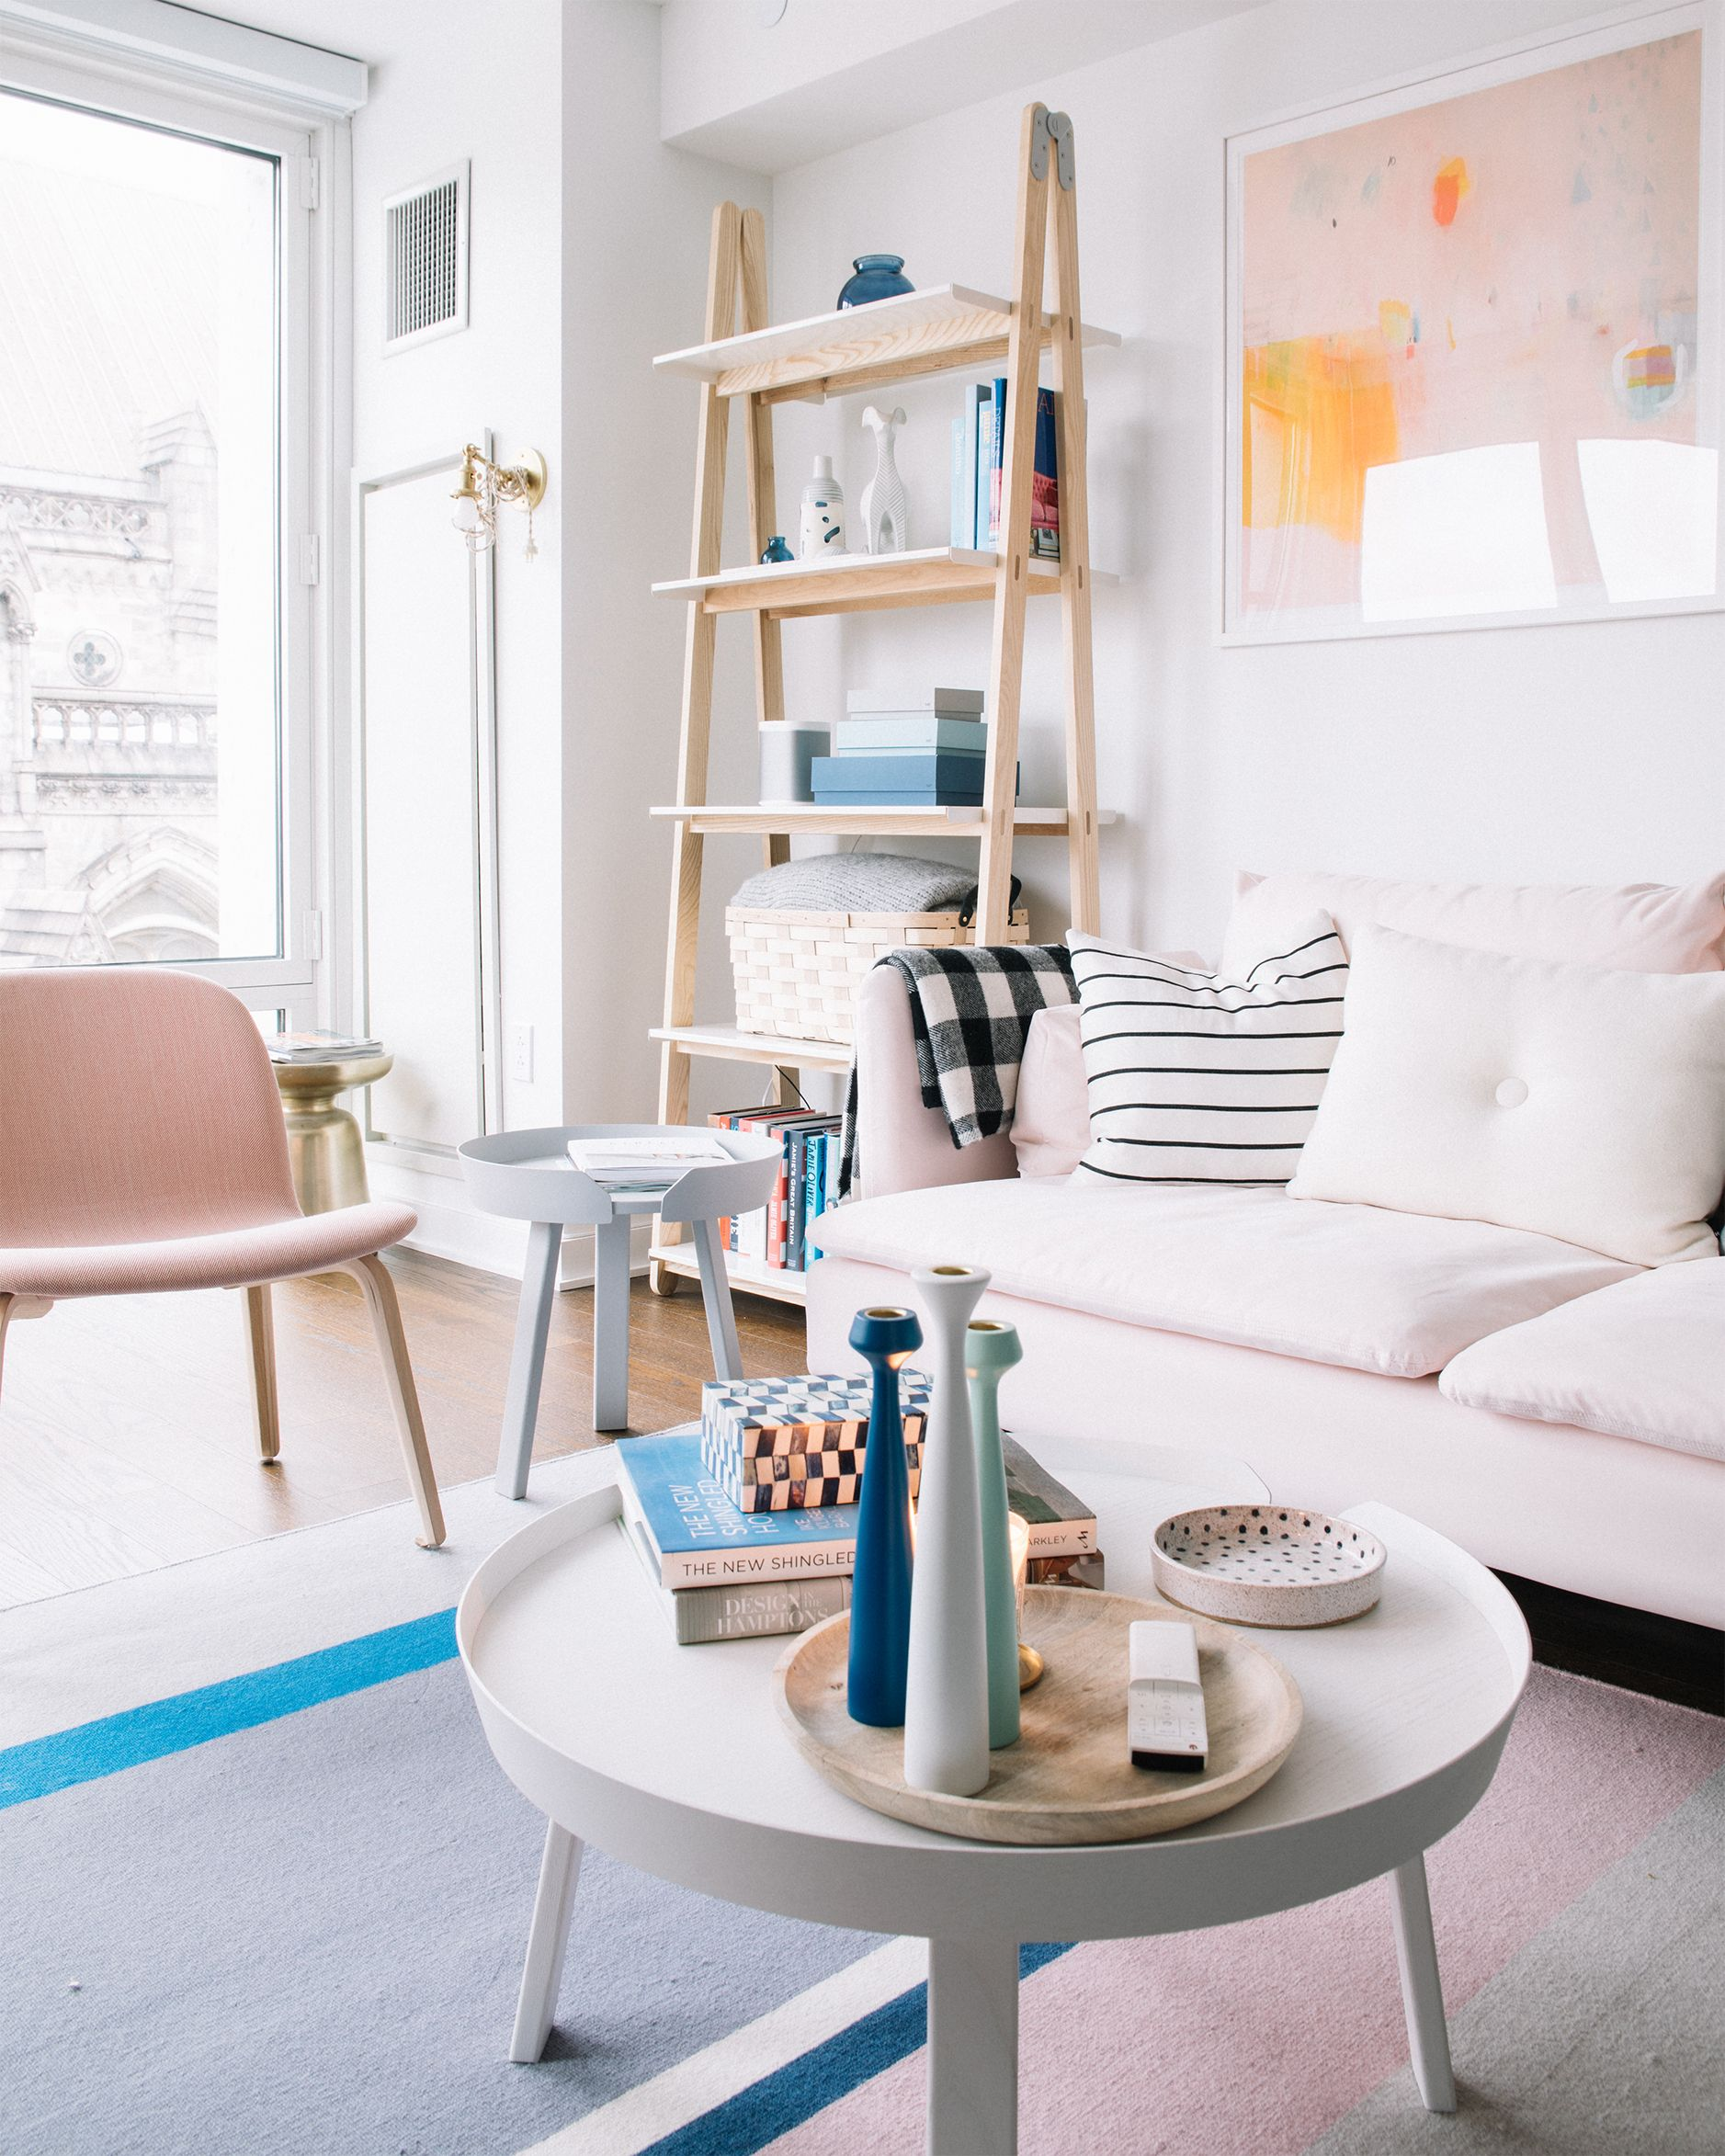 Millennial Pink Decorating Ideas From My Living Room Check Out This Inspiration For Decor And Lounge Using Blush Light A Couch Sofa